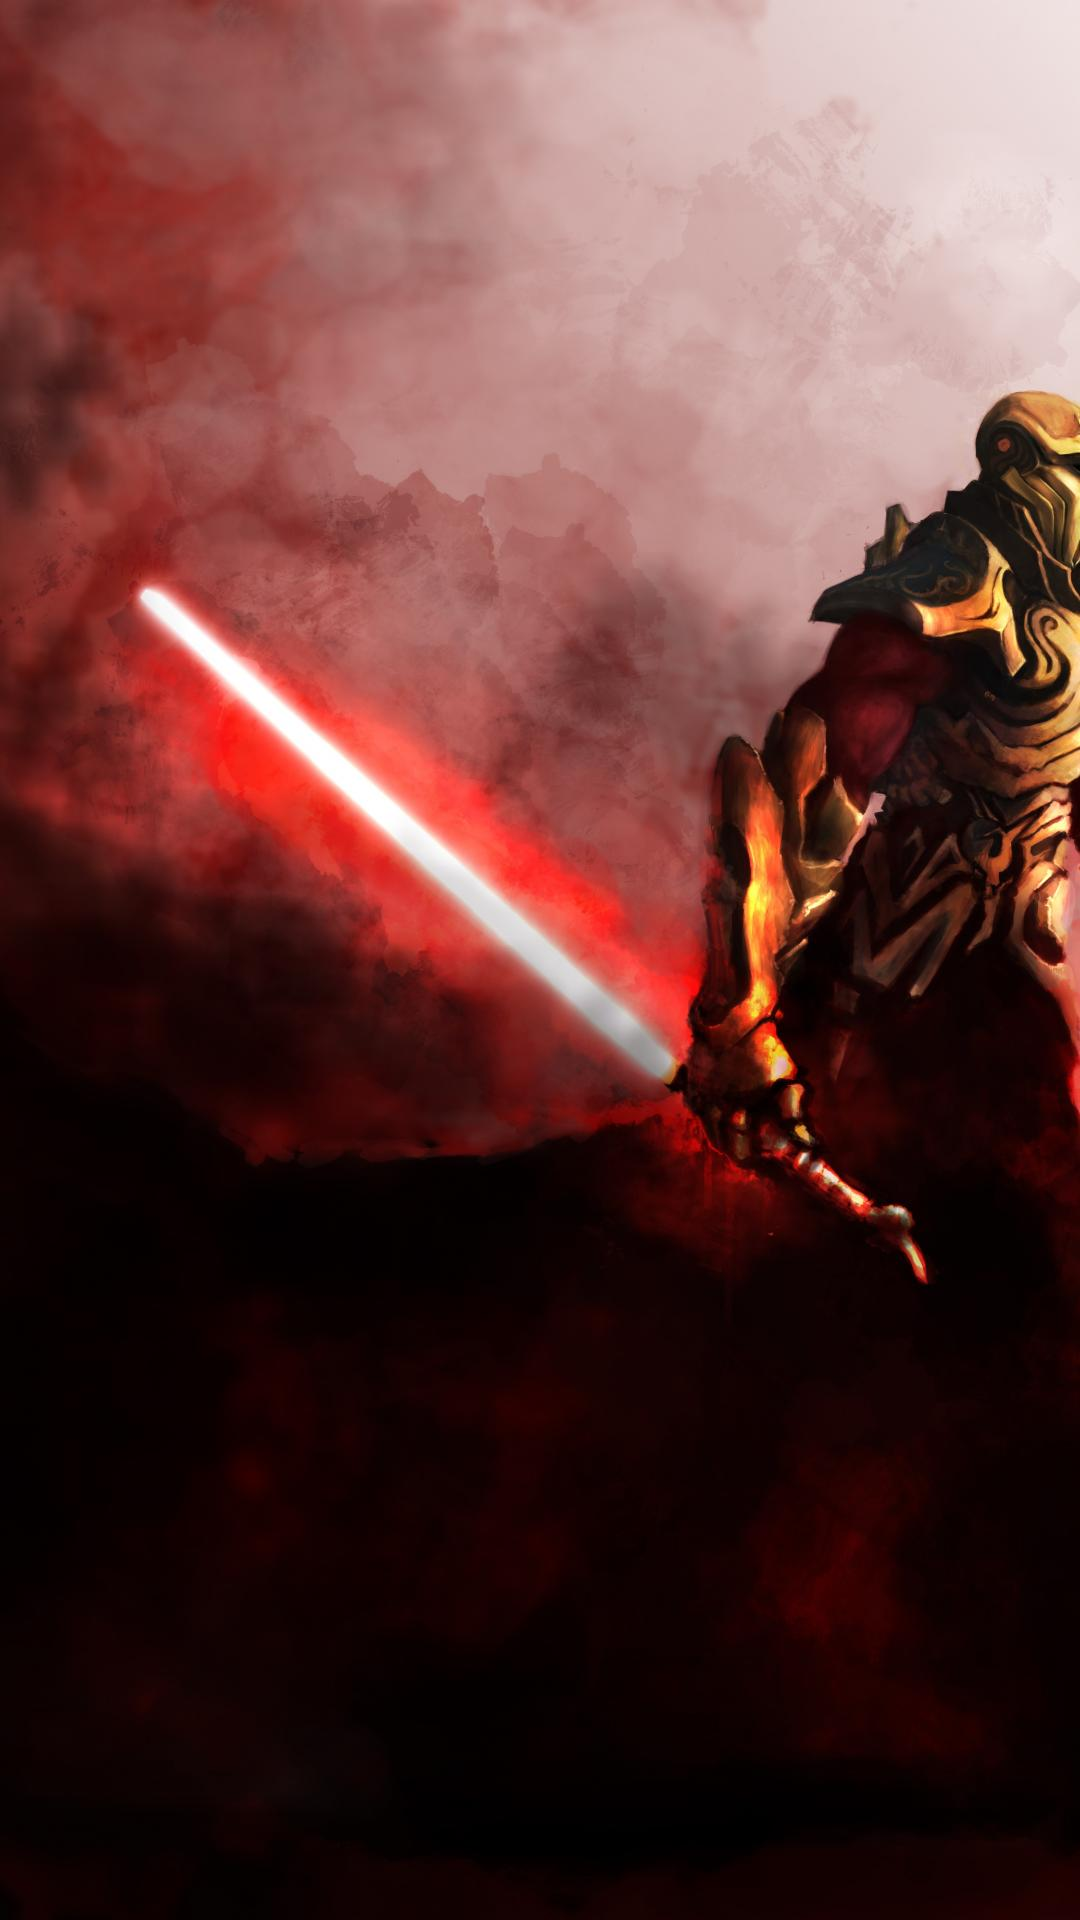 Sith Lords Wallpapers 4k 1080x1920 Download Hd Wallpaper Wallpapertip